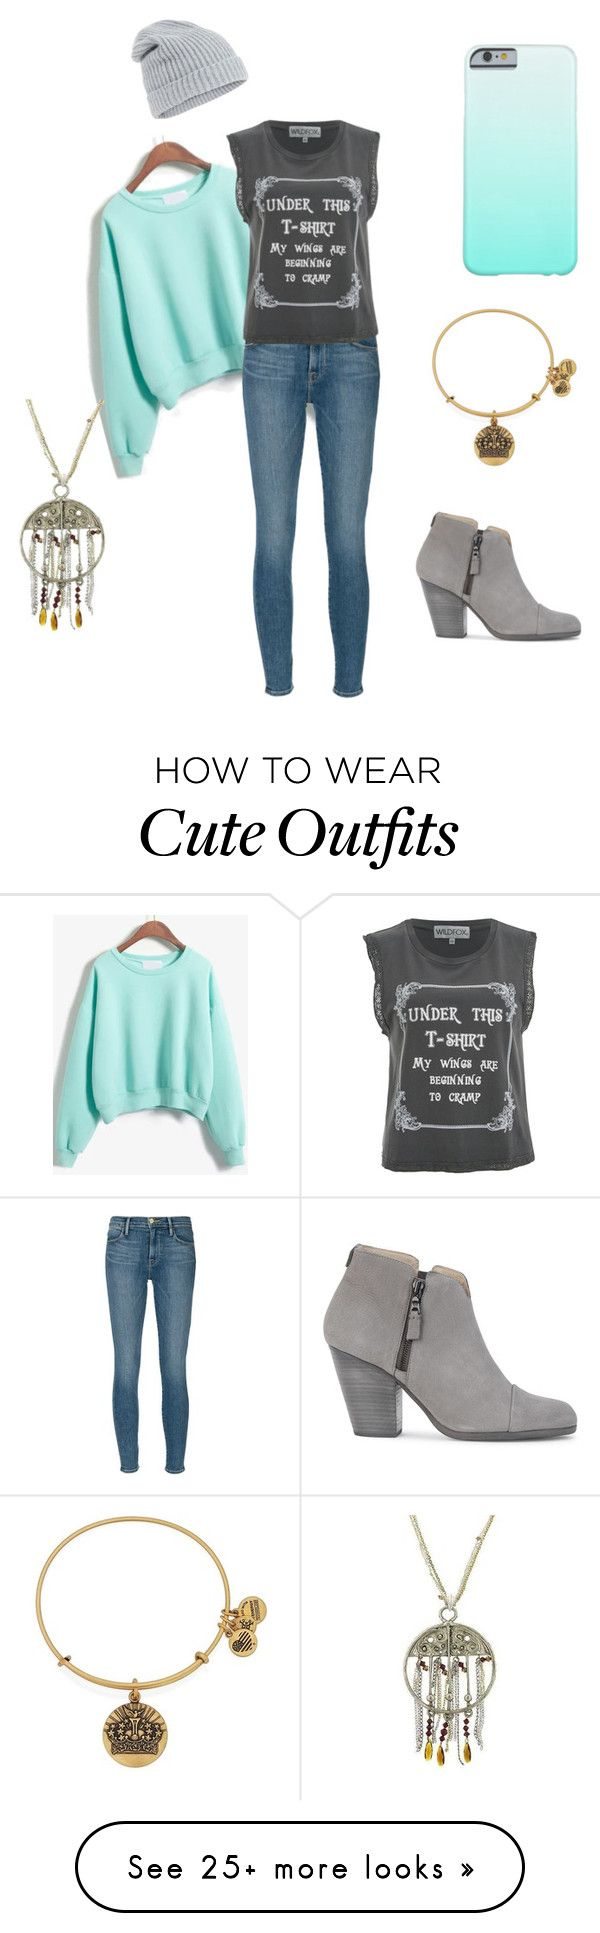 """""""Late night movie go to outfit"""" by acunningham1111 on Polyvore featuring Frame Denim, Wildfox, Accessorize, rag & bone, 1928 and Alex and Ani"""